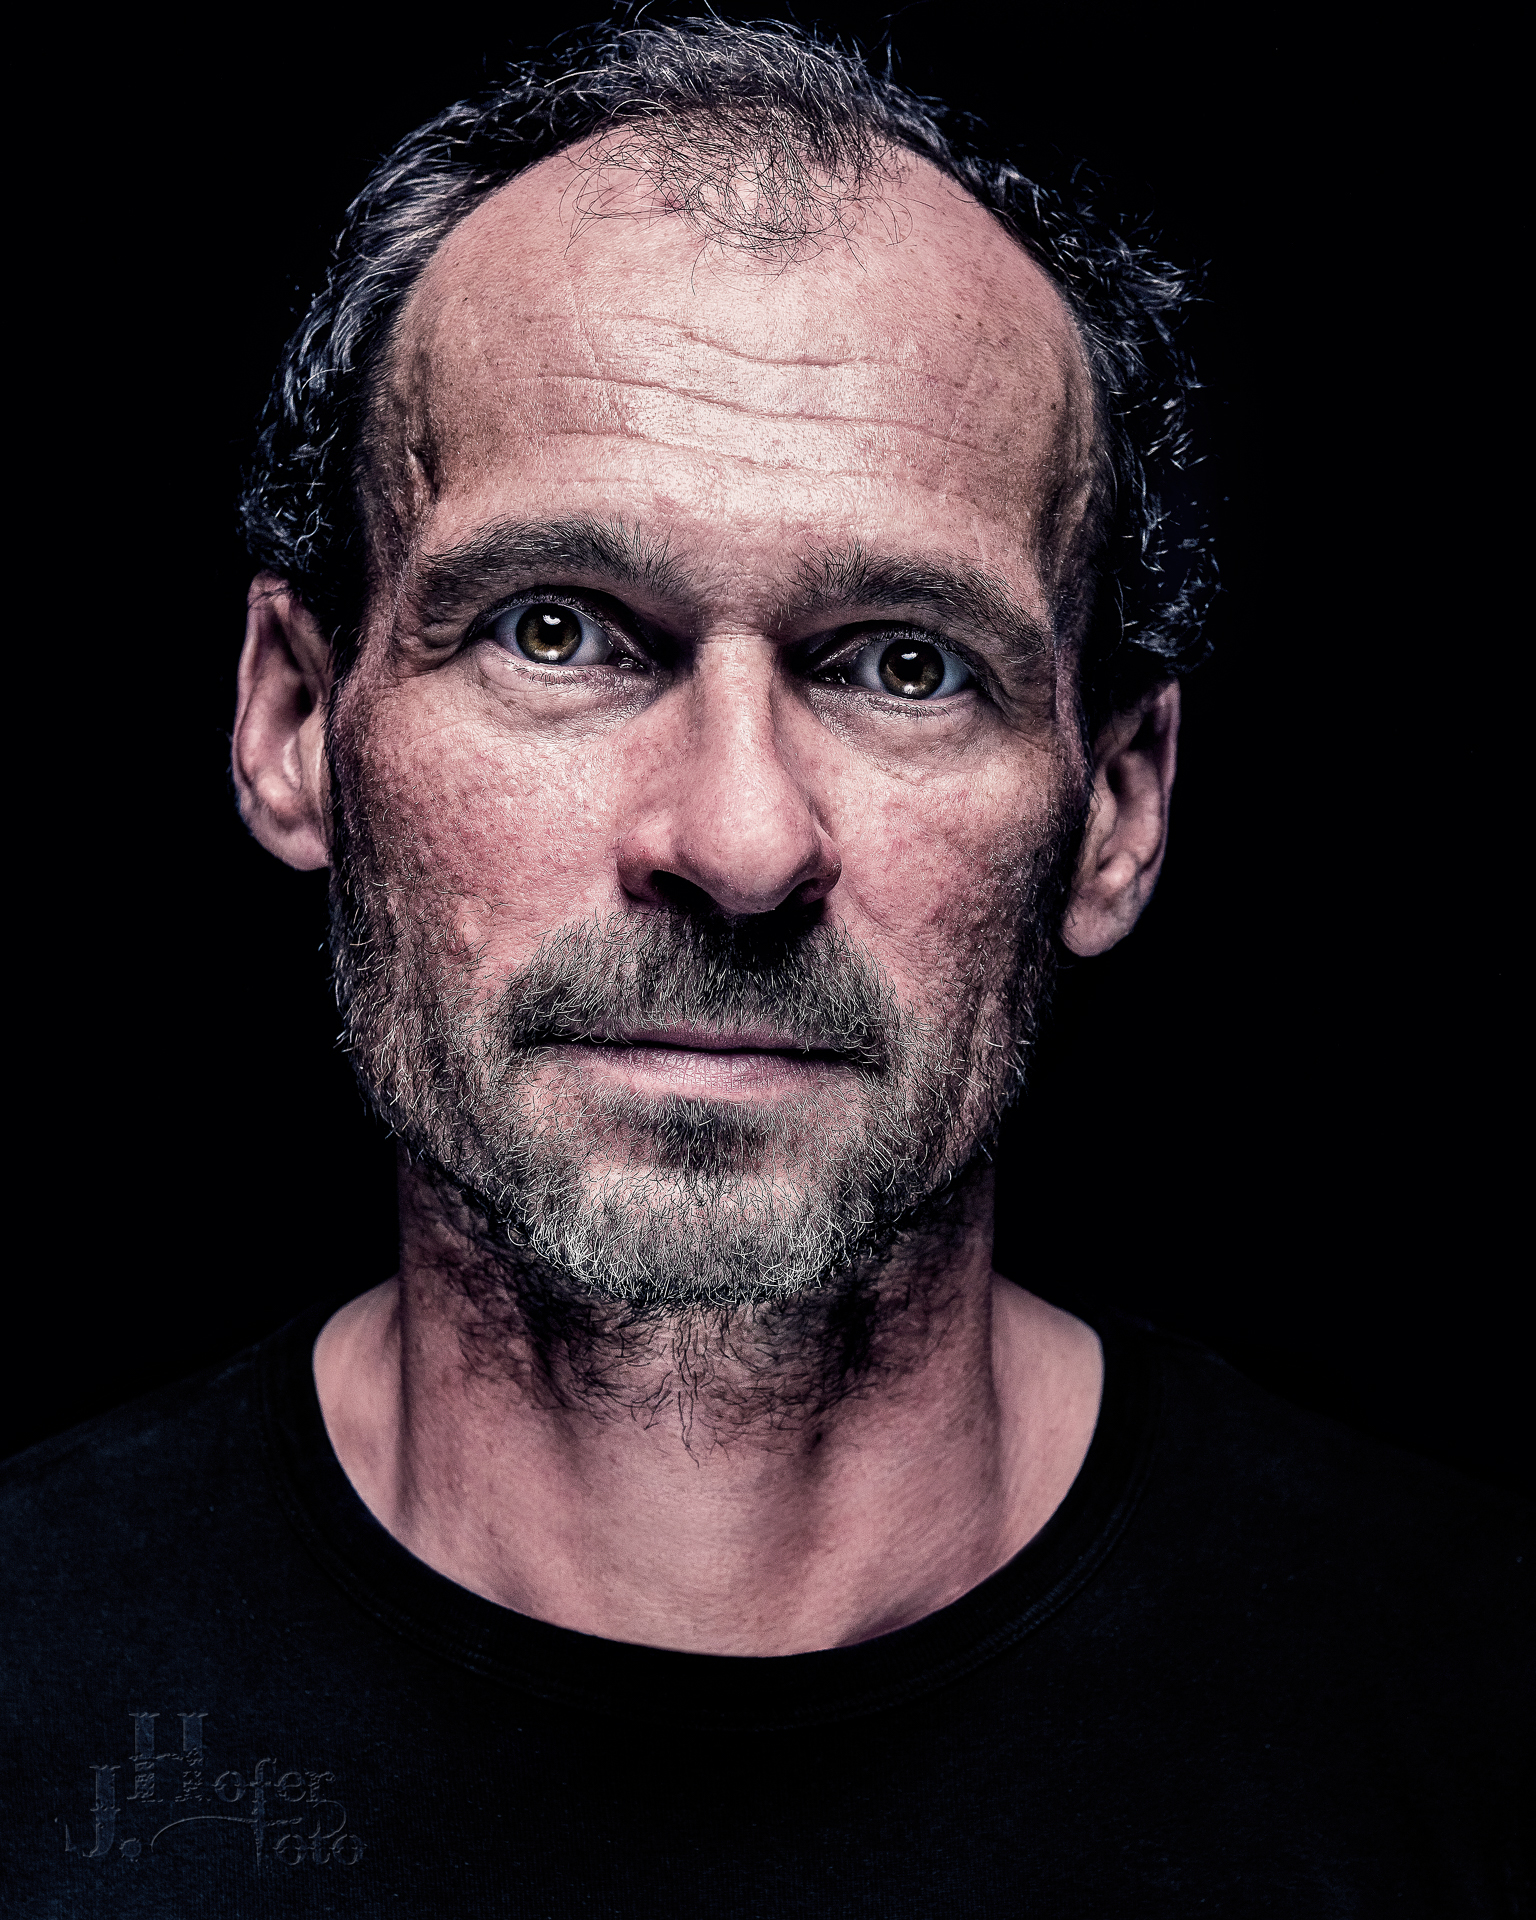 Portrait 16 by JHofer-Foto Juergen Hofer